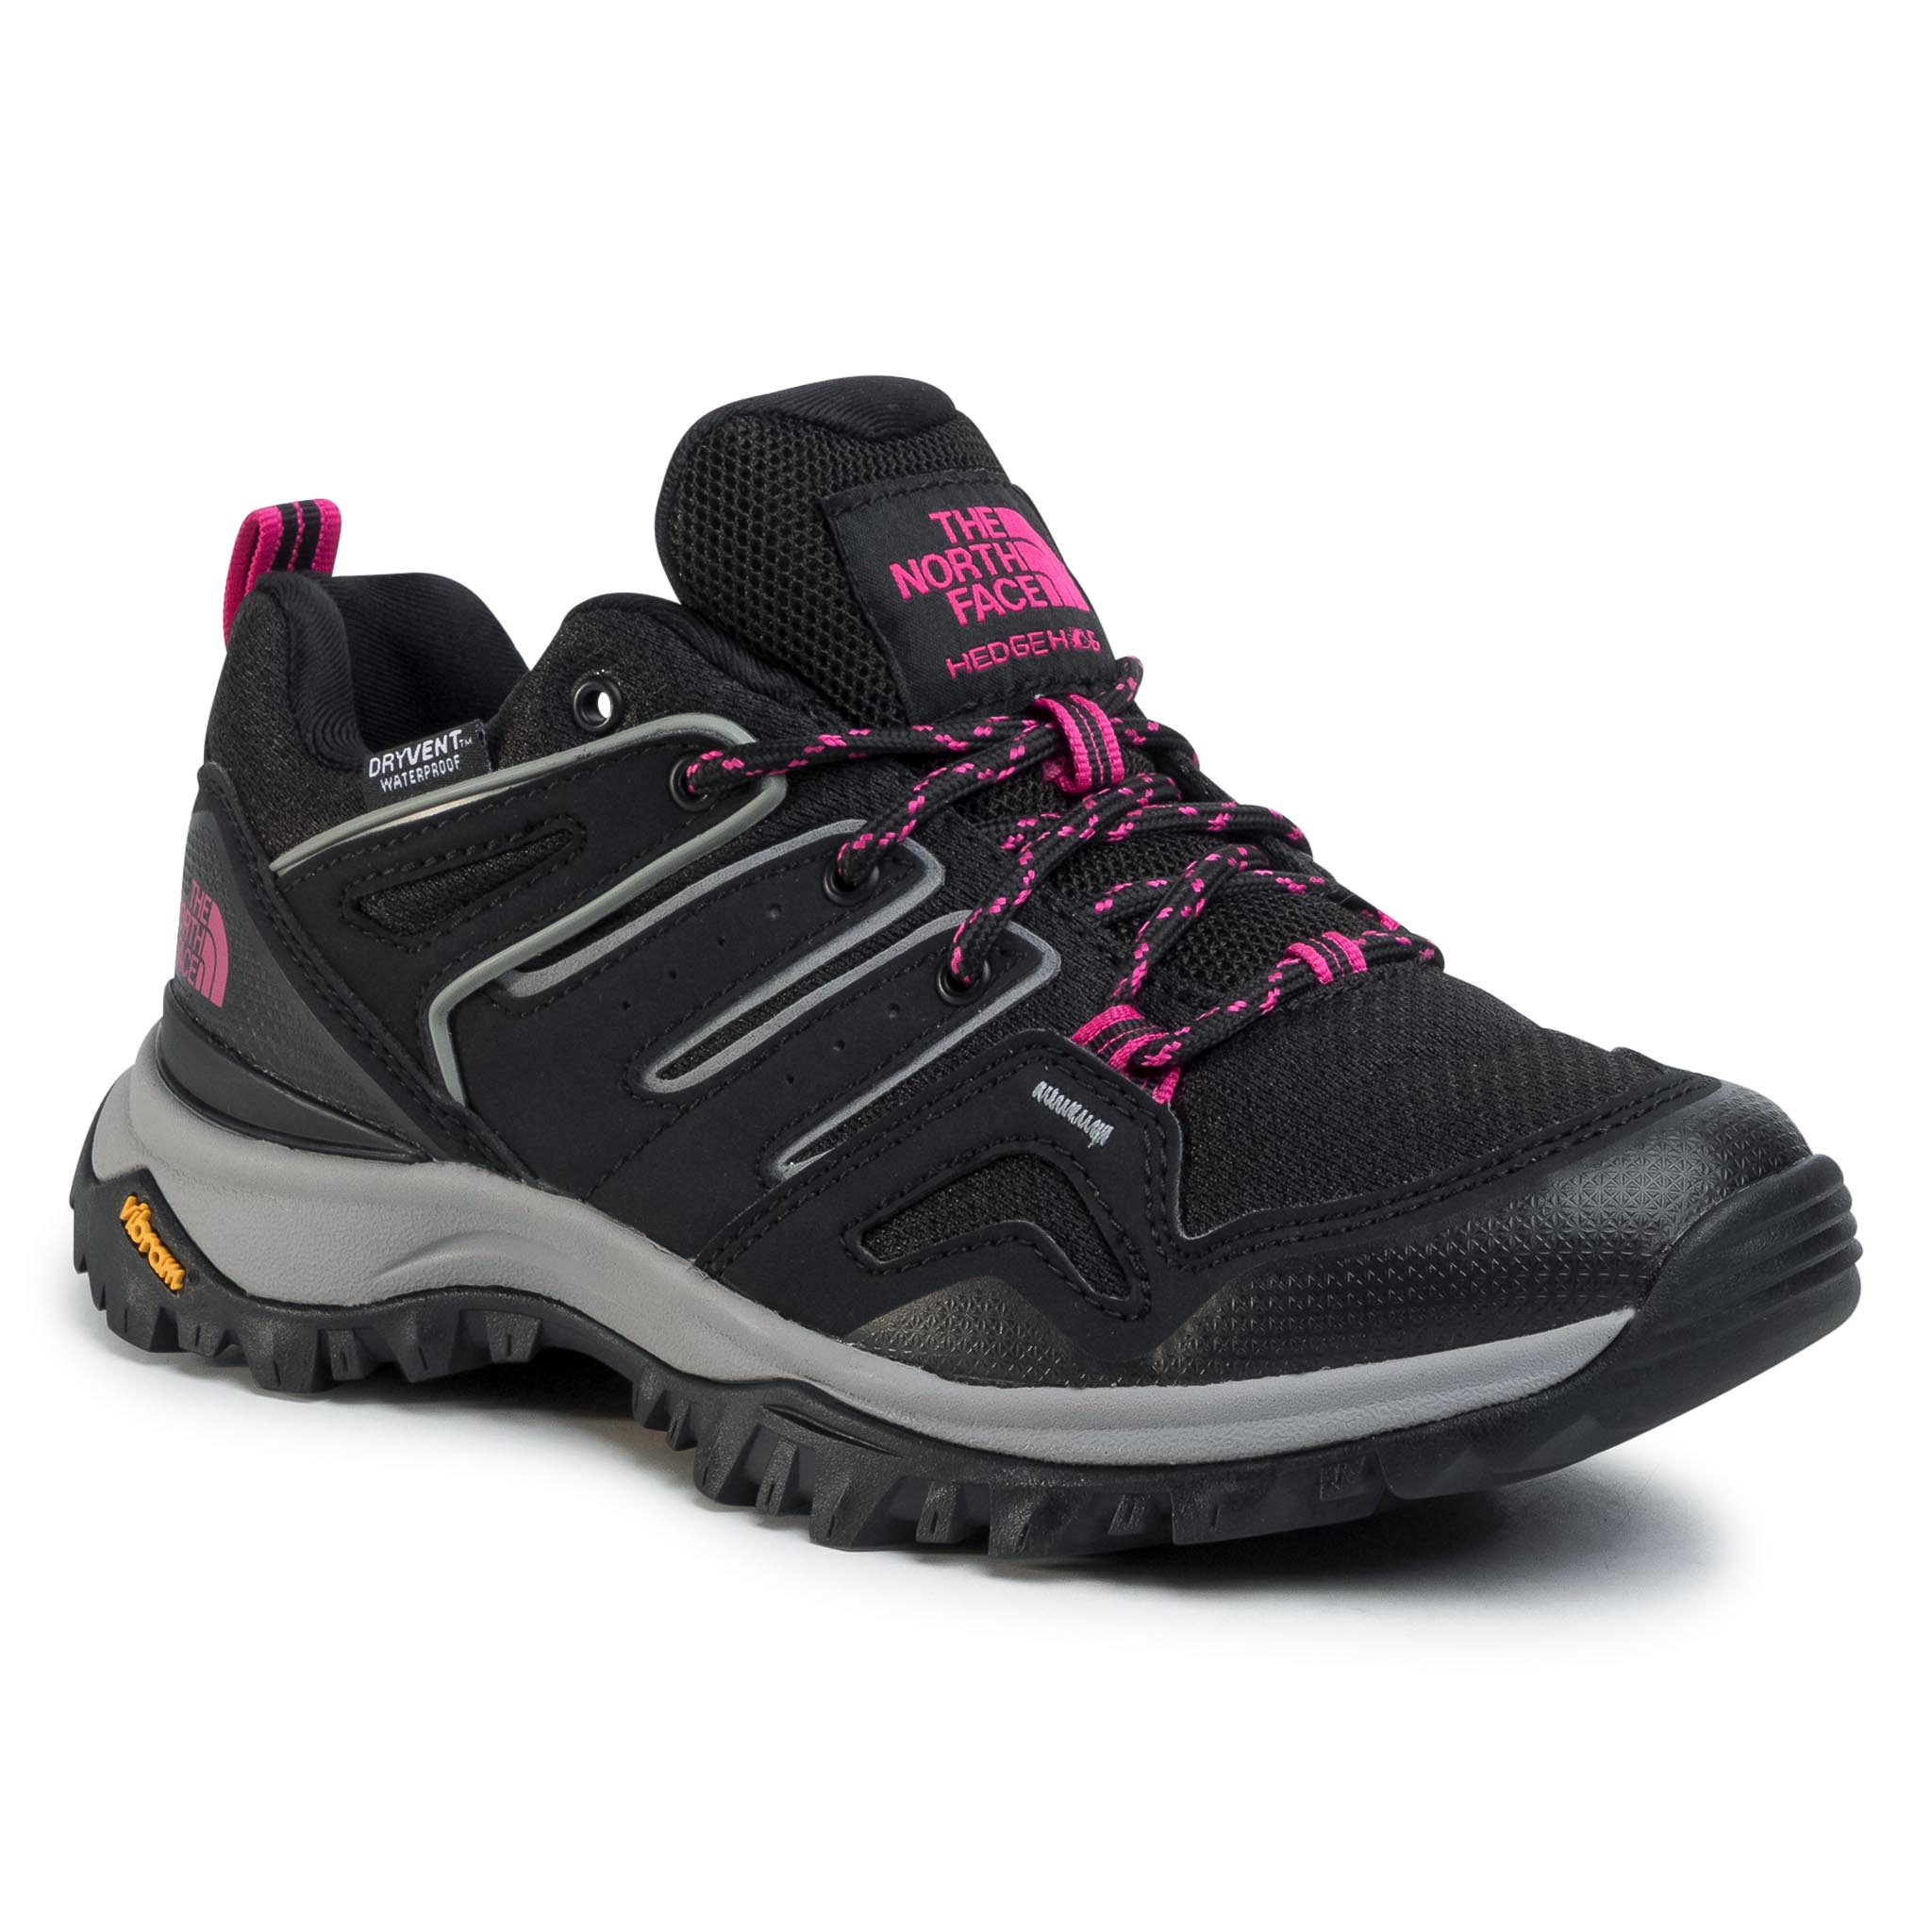 Trekkings The North Face - Hedgehog Fastpack Ii Wp Nf0a46aqj94 Tnf Black/Mr. Pink imagine epantofi.ro 2021